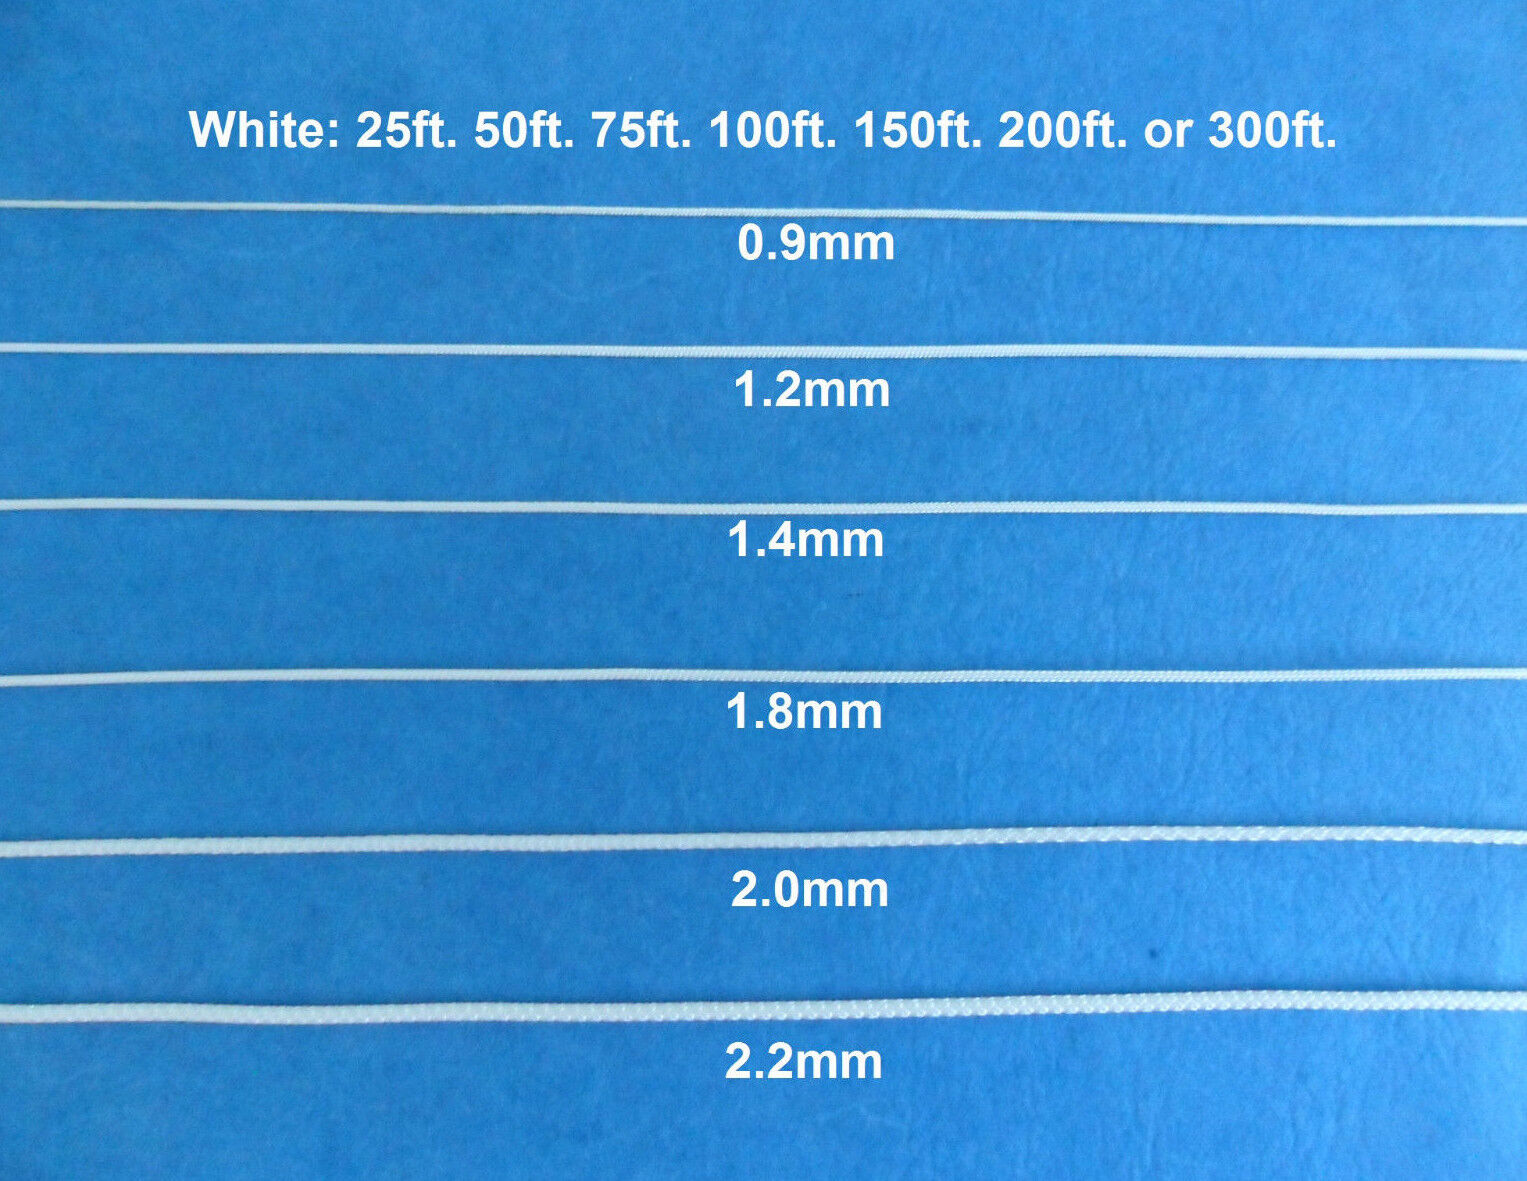 0.9mm 1.2mm 1.4mm 1.8mm 2.0mm 2.2mm White Blinds Shade Lift